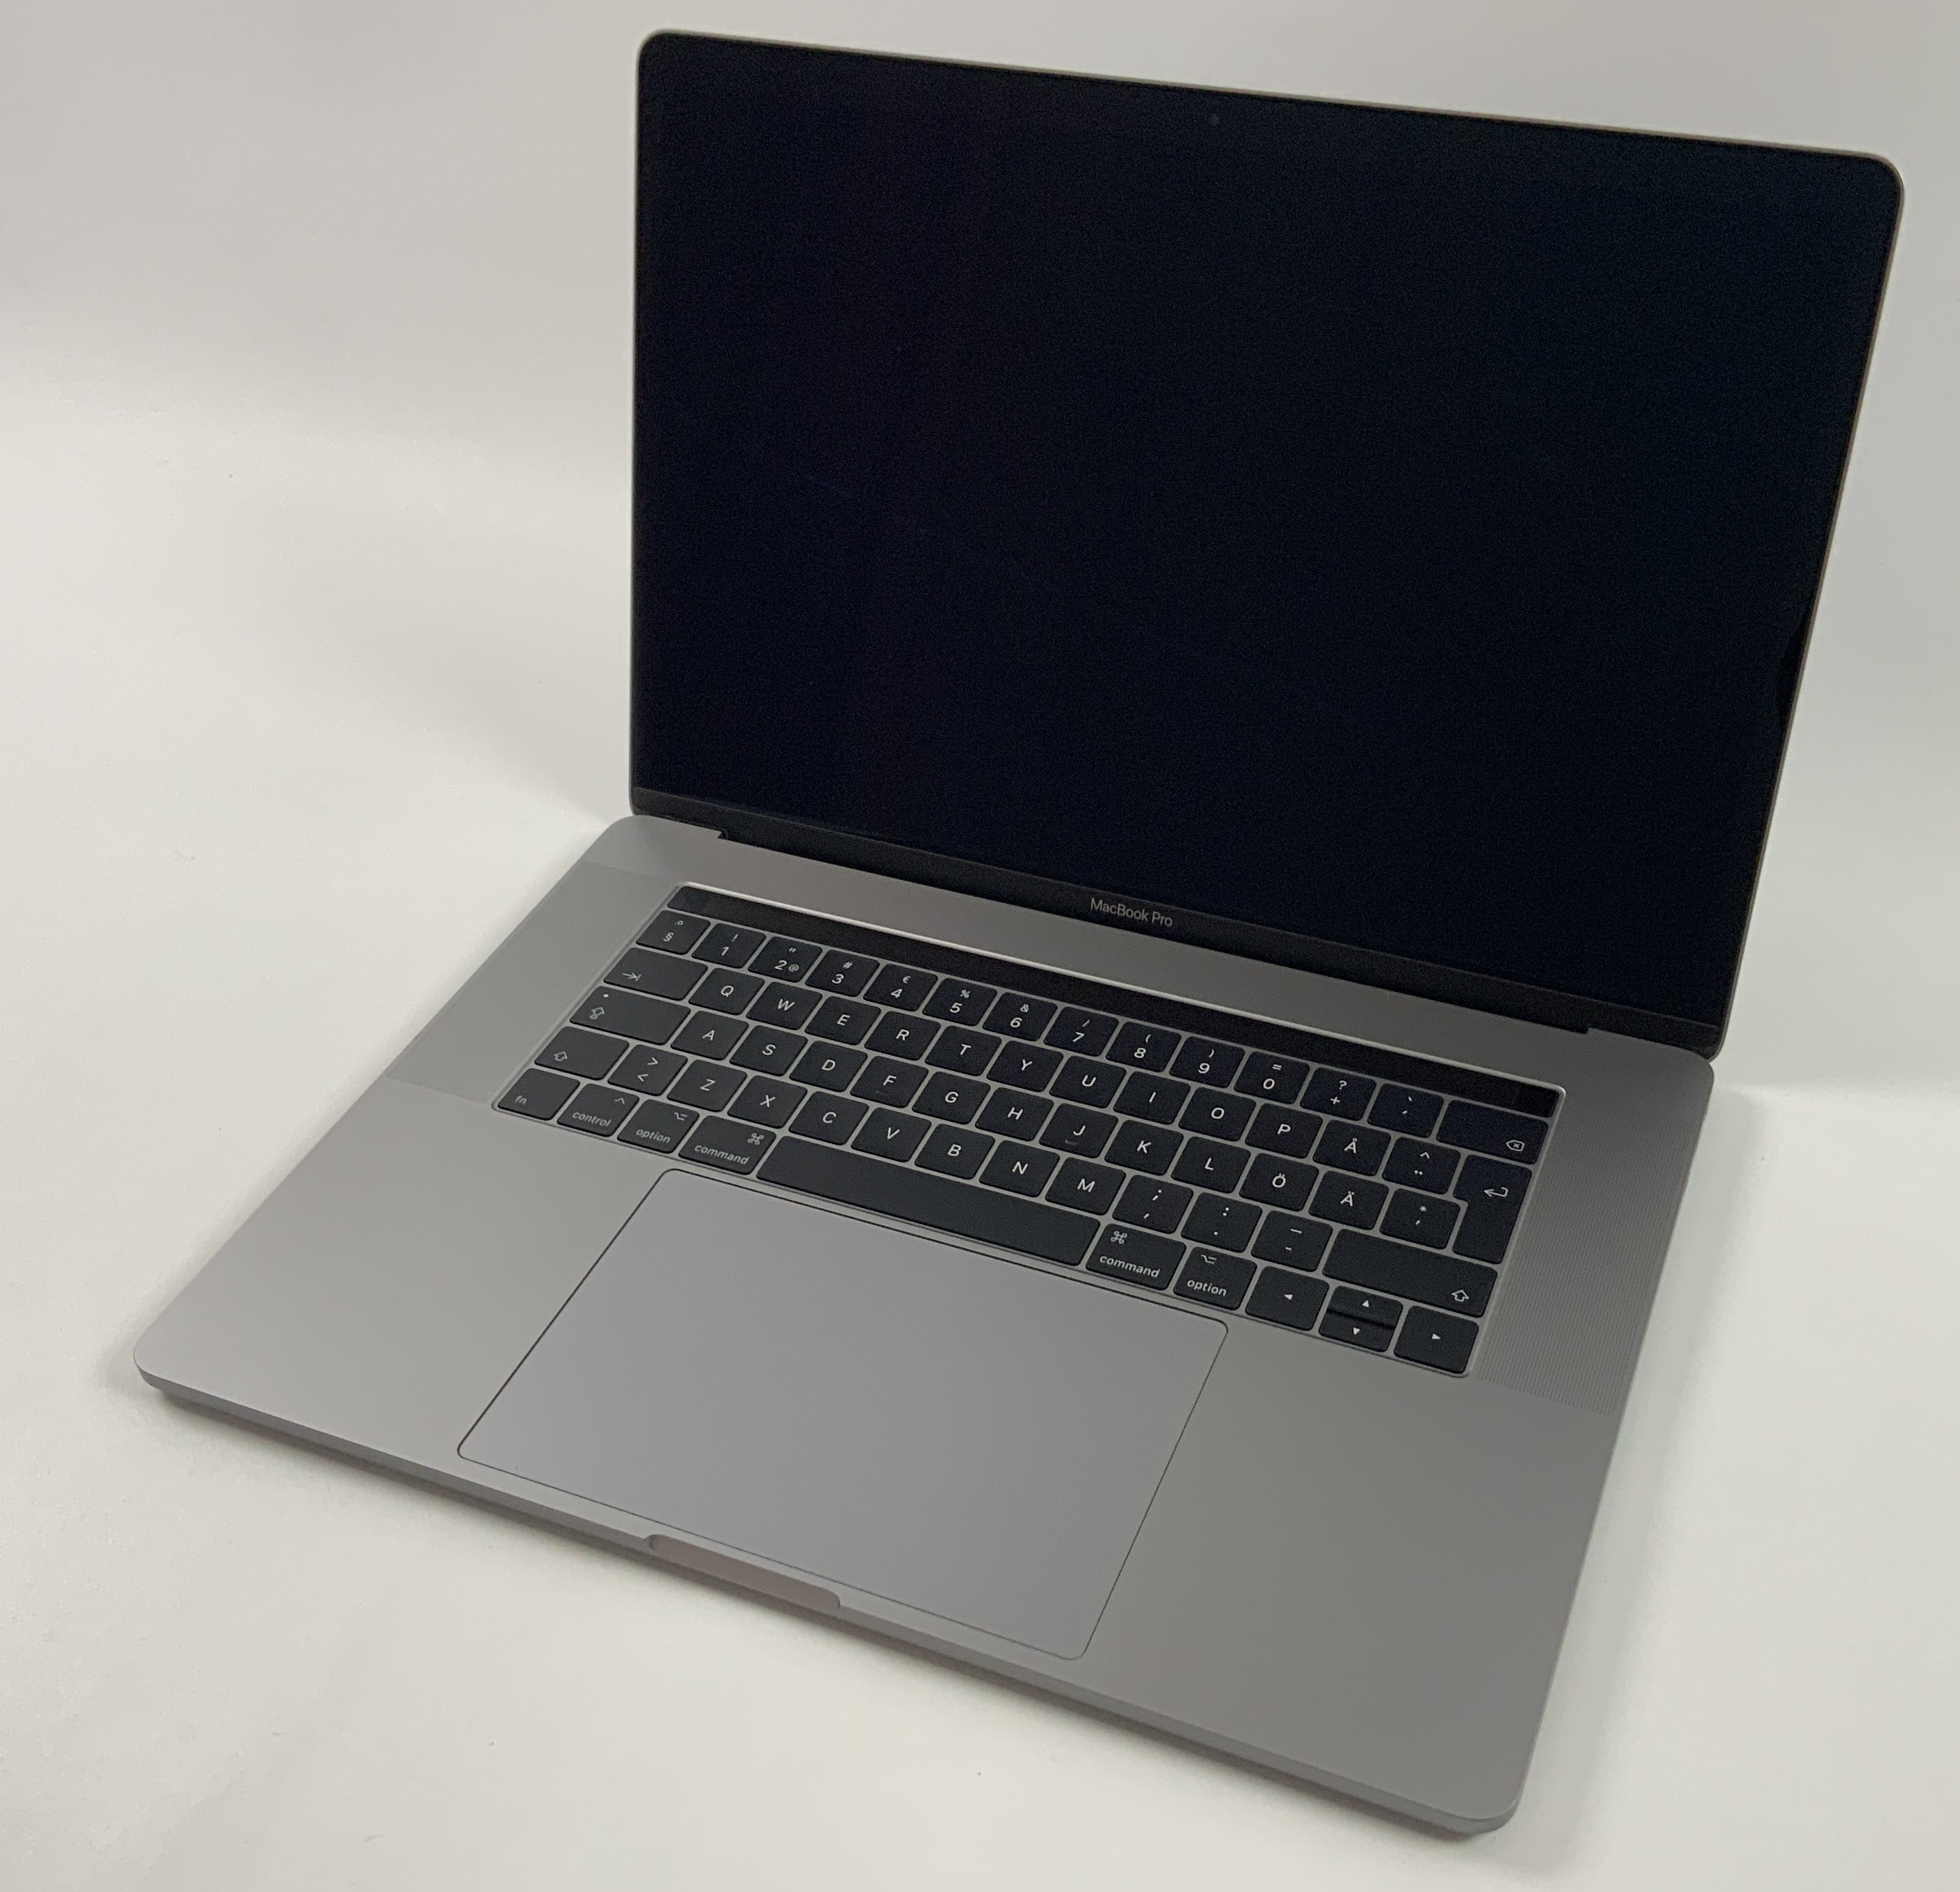 "MacBook Pro 15"" Touch Bar Mid 2017 (Intel Quad-Core i7 2.8 GHz 16 GB RAM 256 GB SSD), Space Gray, Intel Quad-Core i7 2.8 GHz, 16 GB RAM, 256 GB SSD, obraz 1"